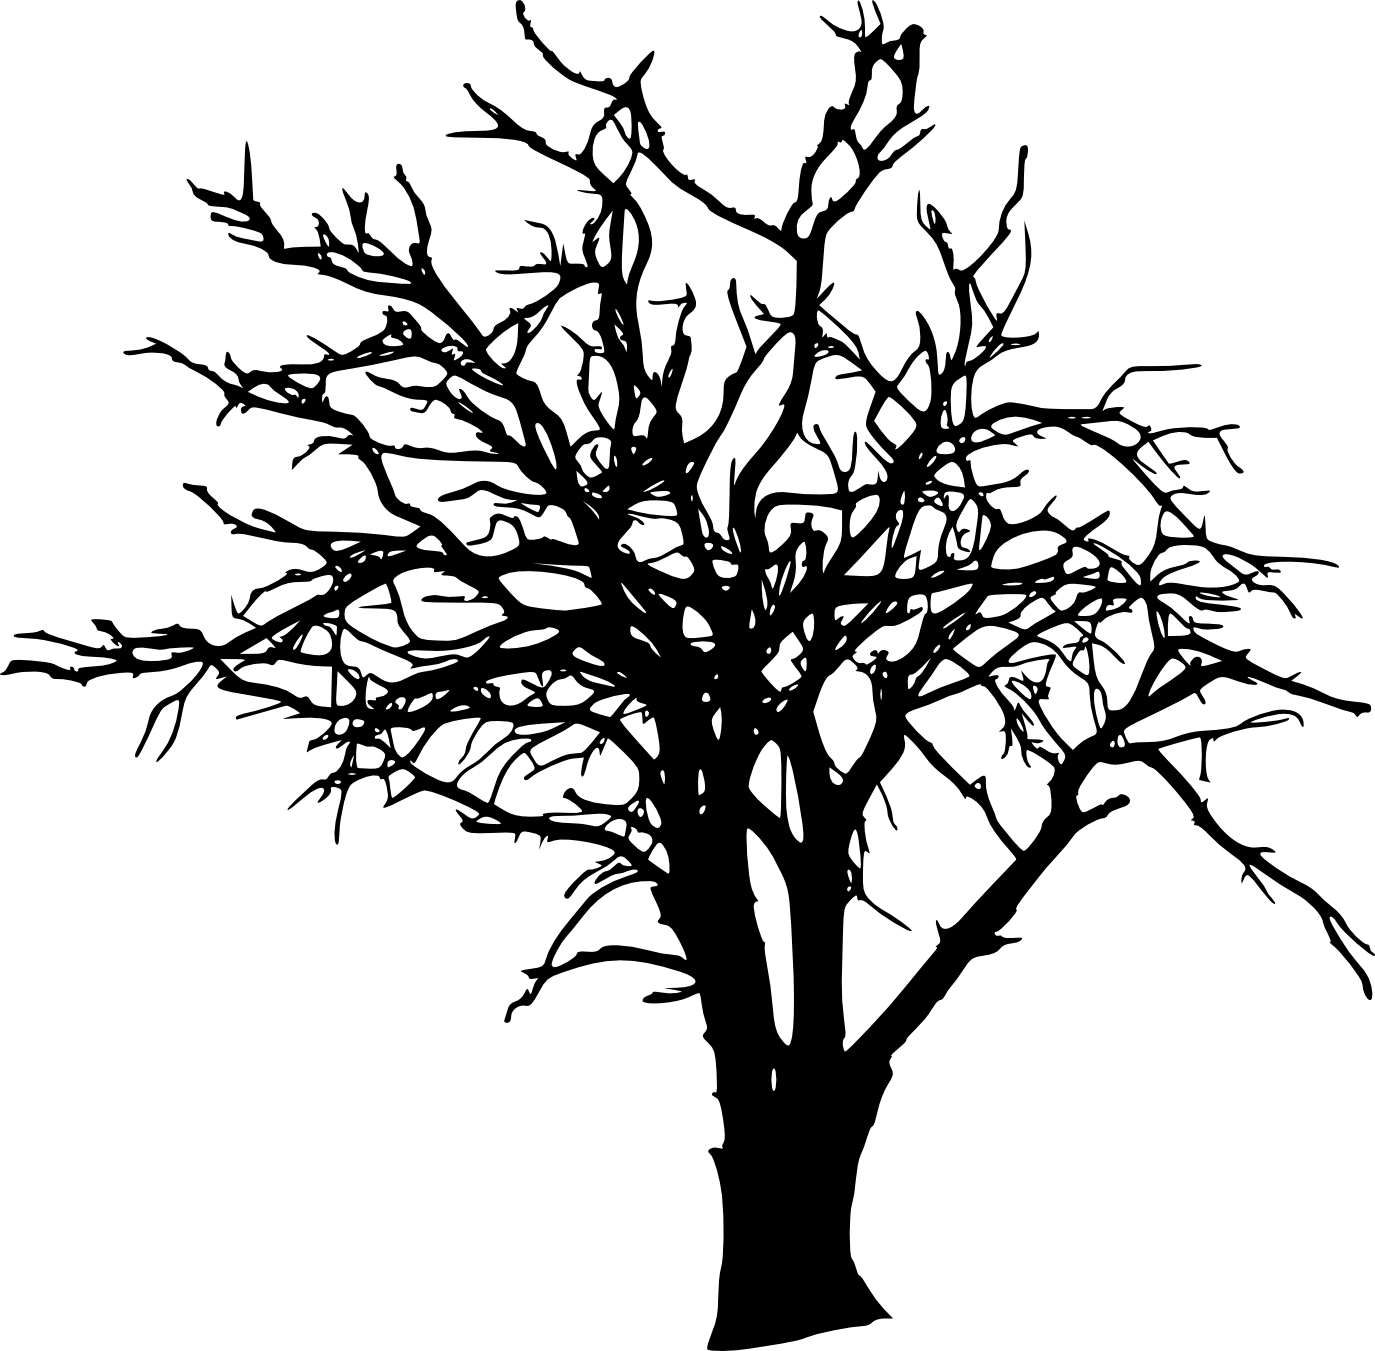 Tree Branch Clip art.